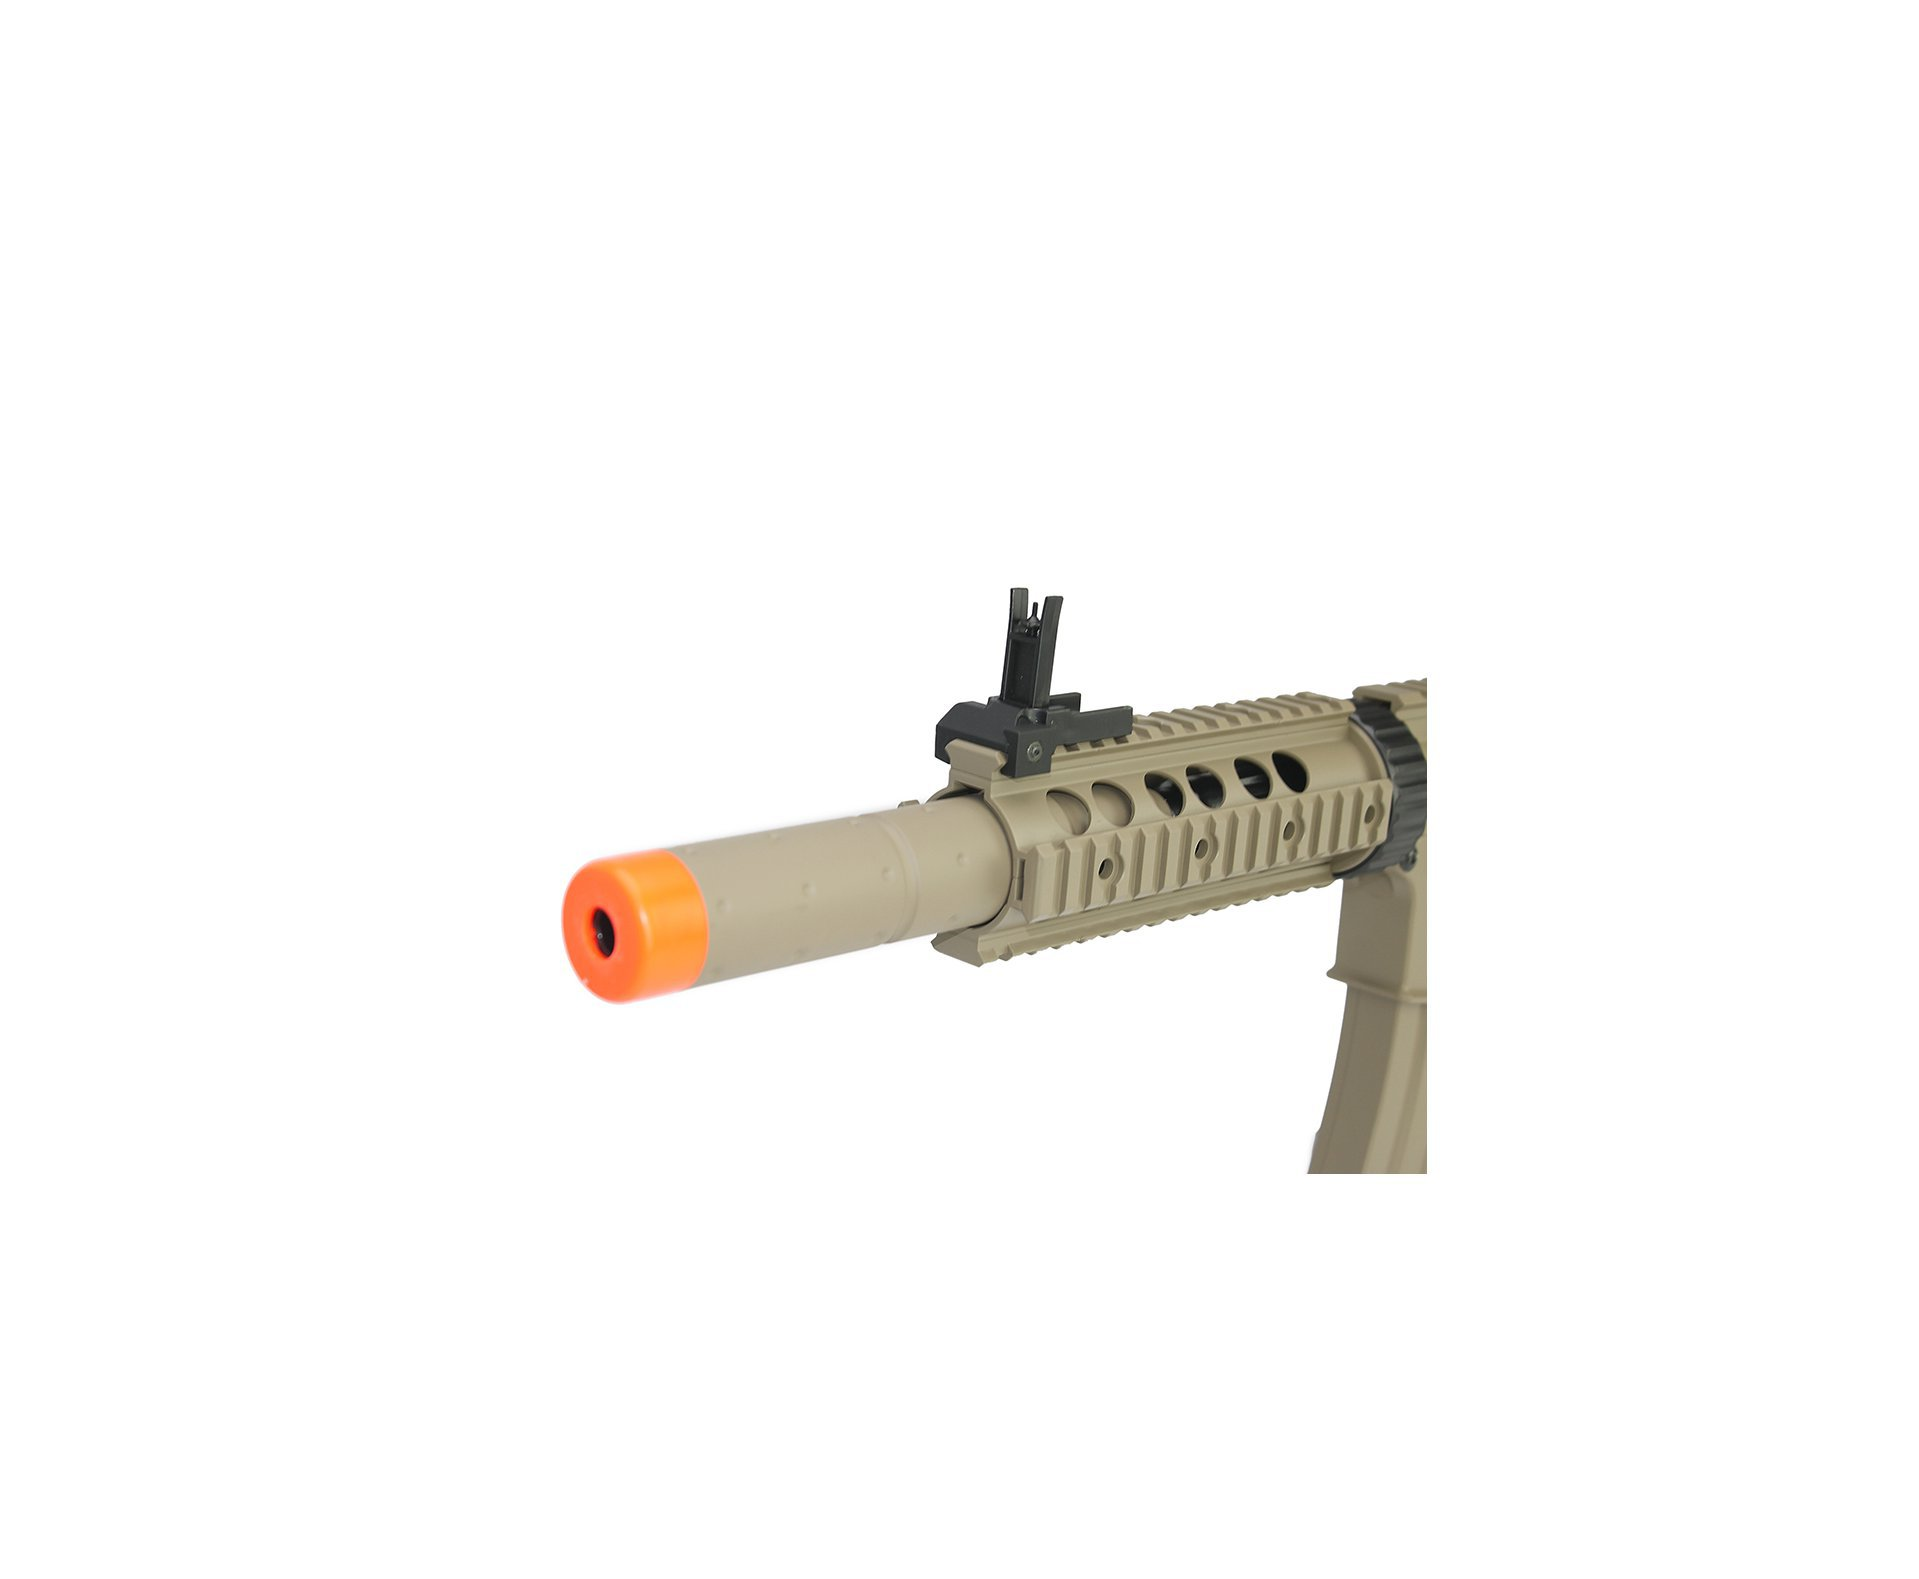 Rifle De Airsoft M4a1 Ris Tan Cm513 Cal 6mm - Eletrico - Bivolt - Cyma